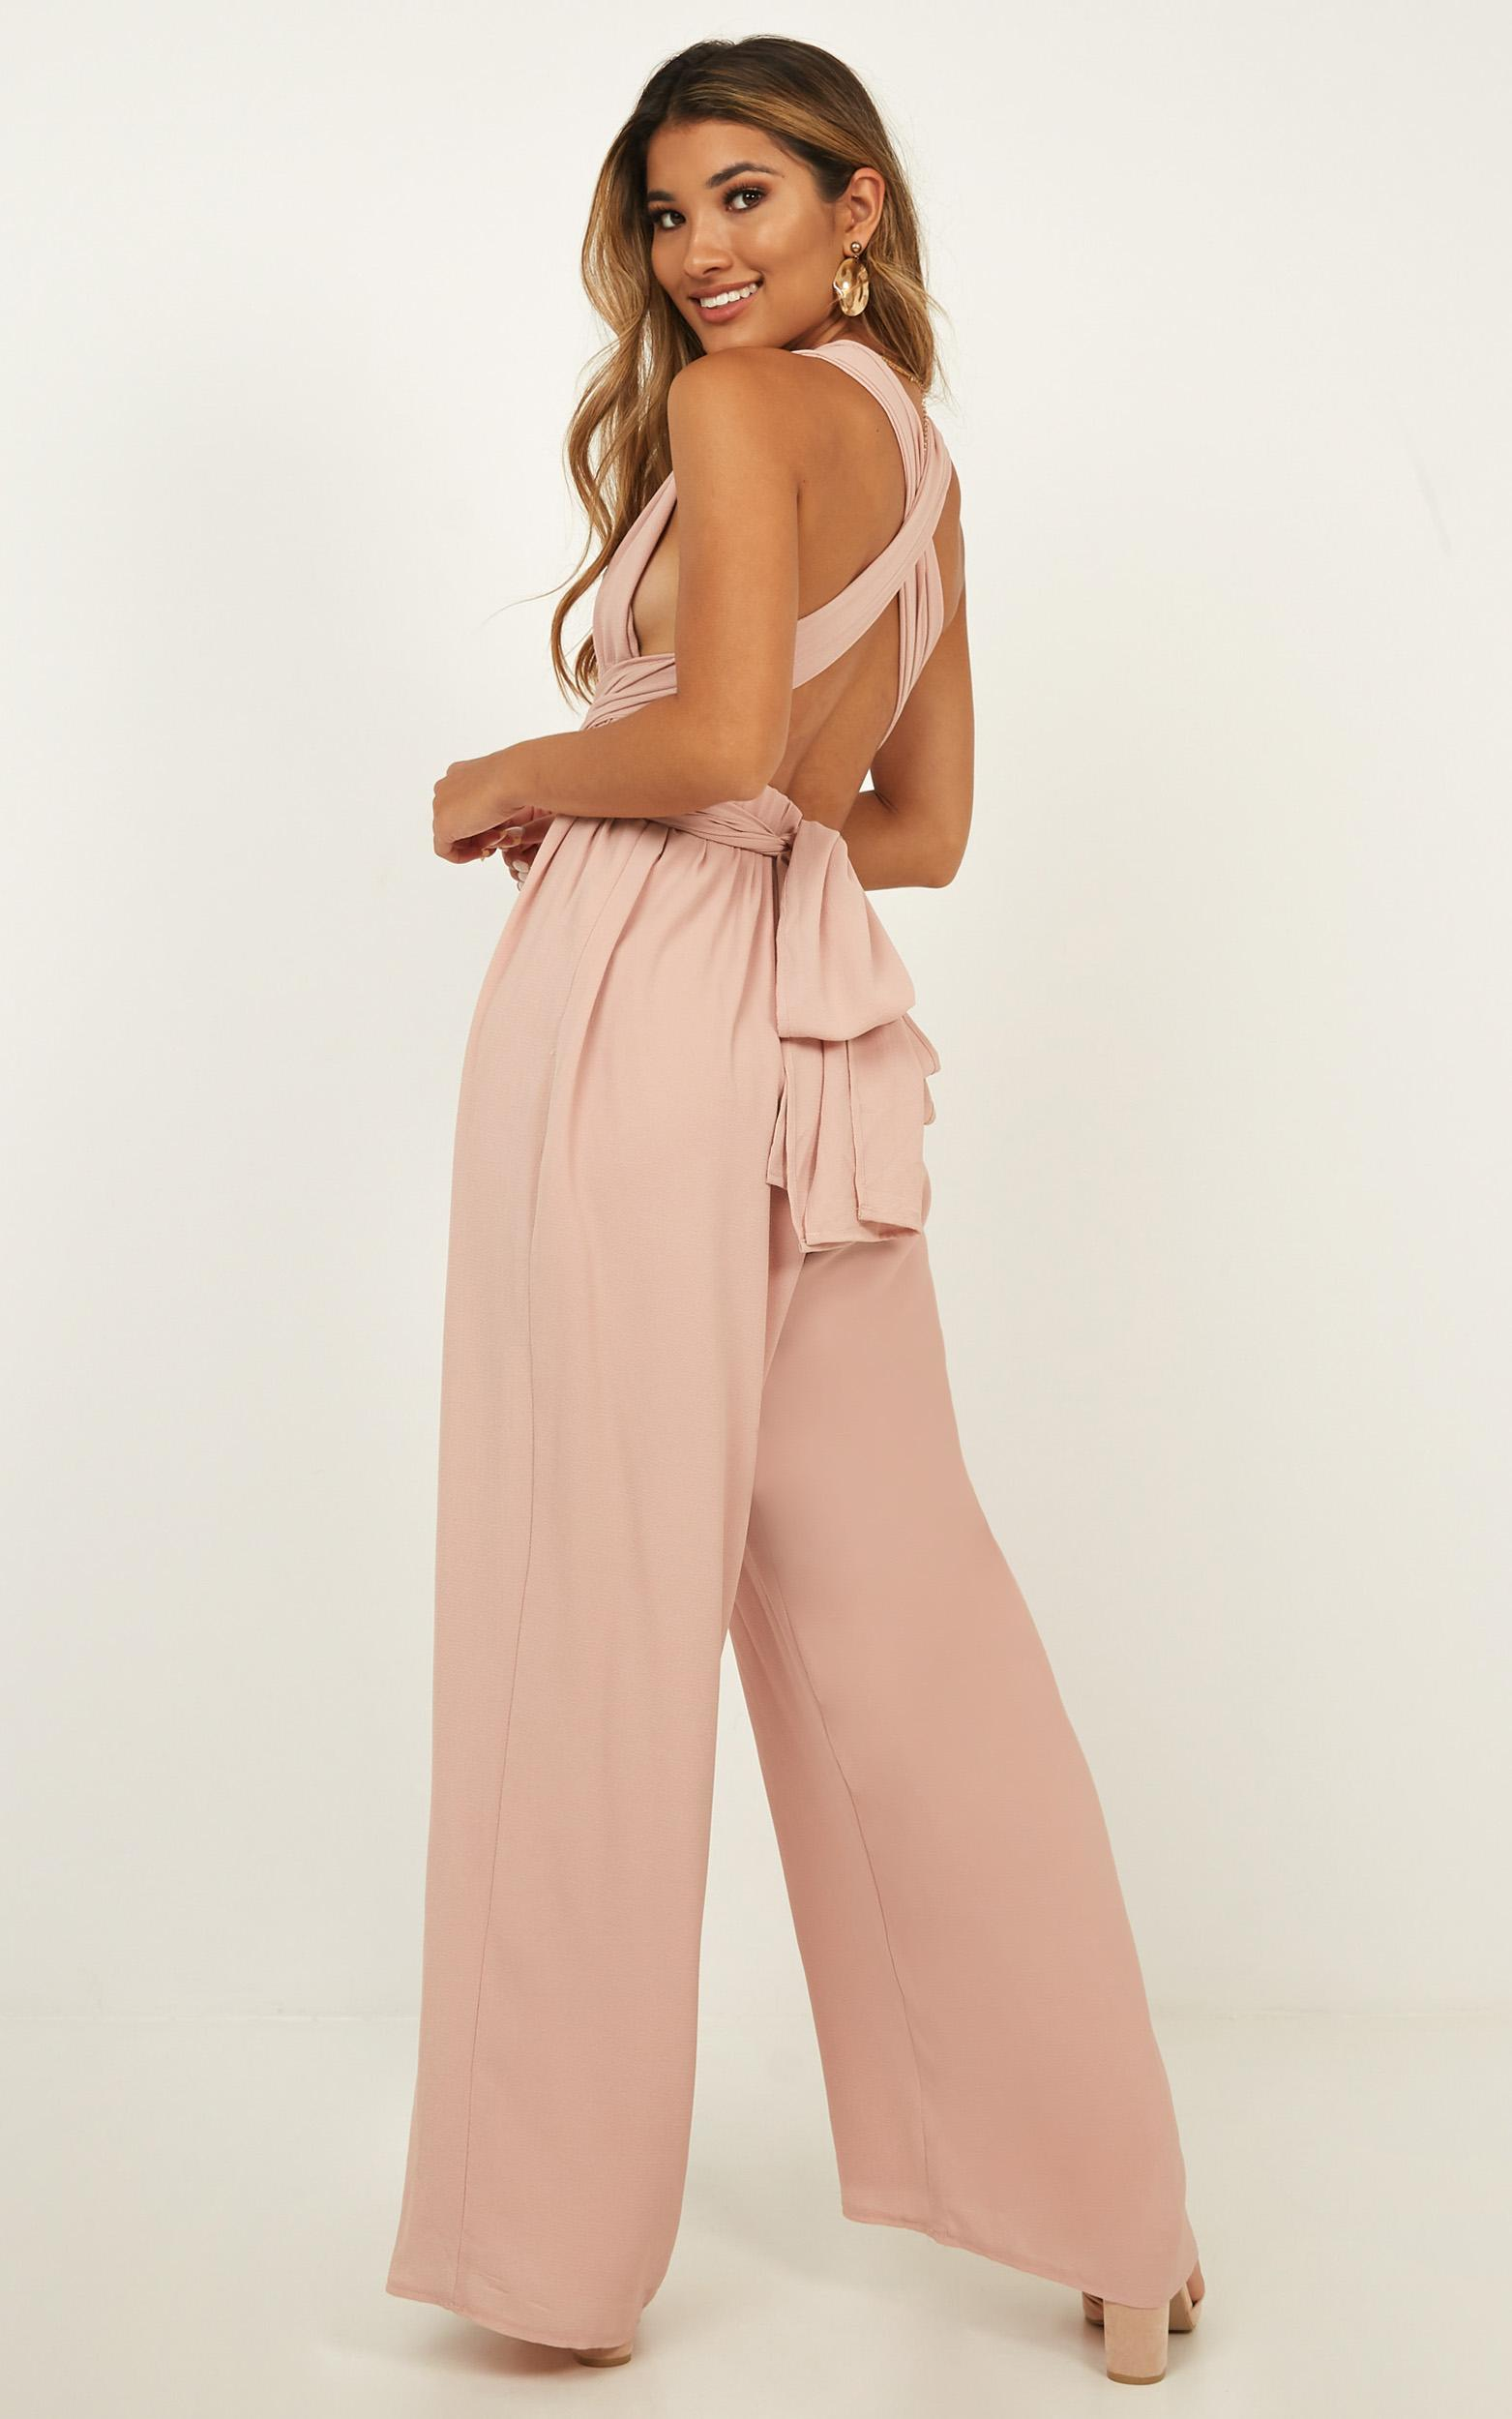 Girls Life Jumpsuit in blush - 16 (XXL), Blush, hi-res image number null